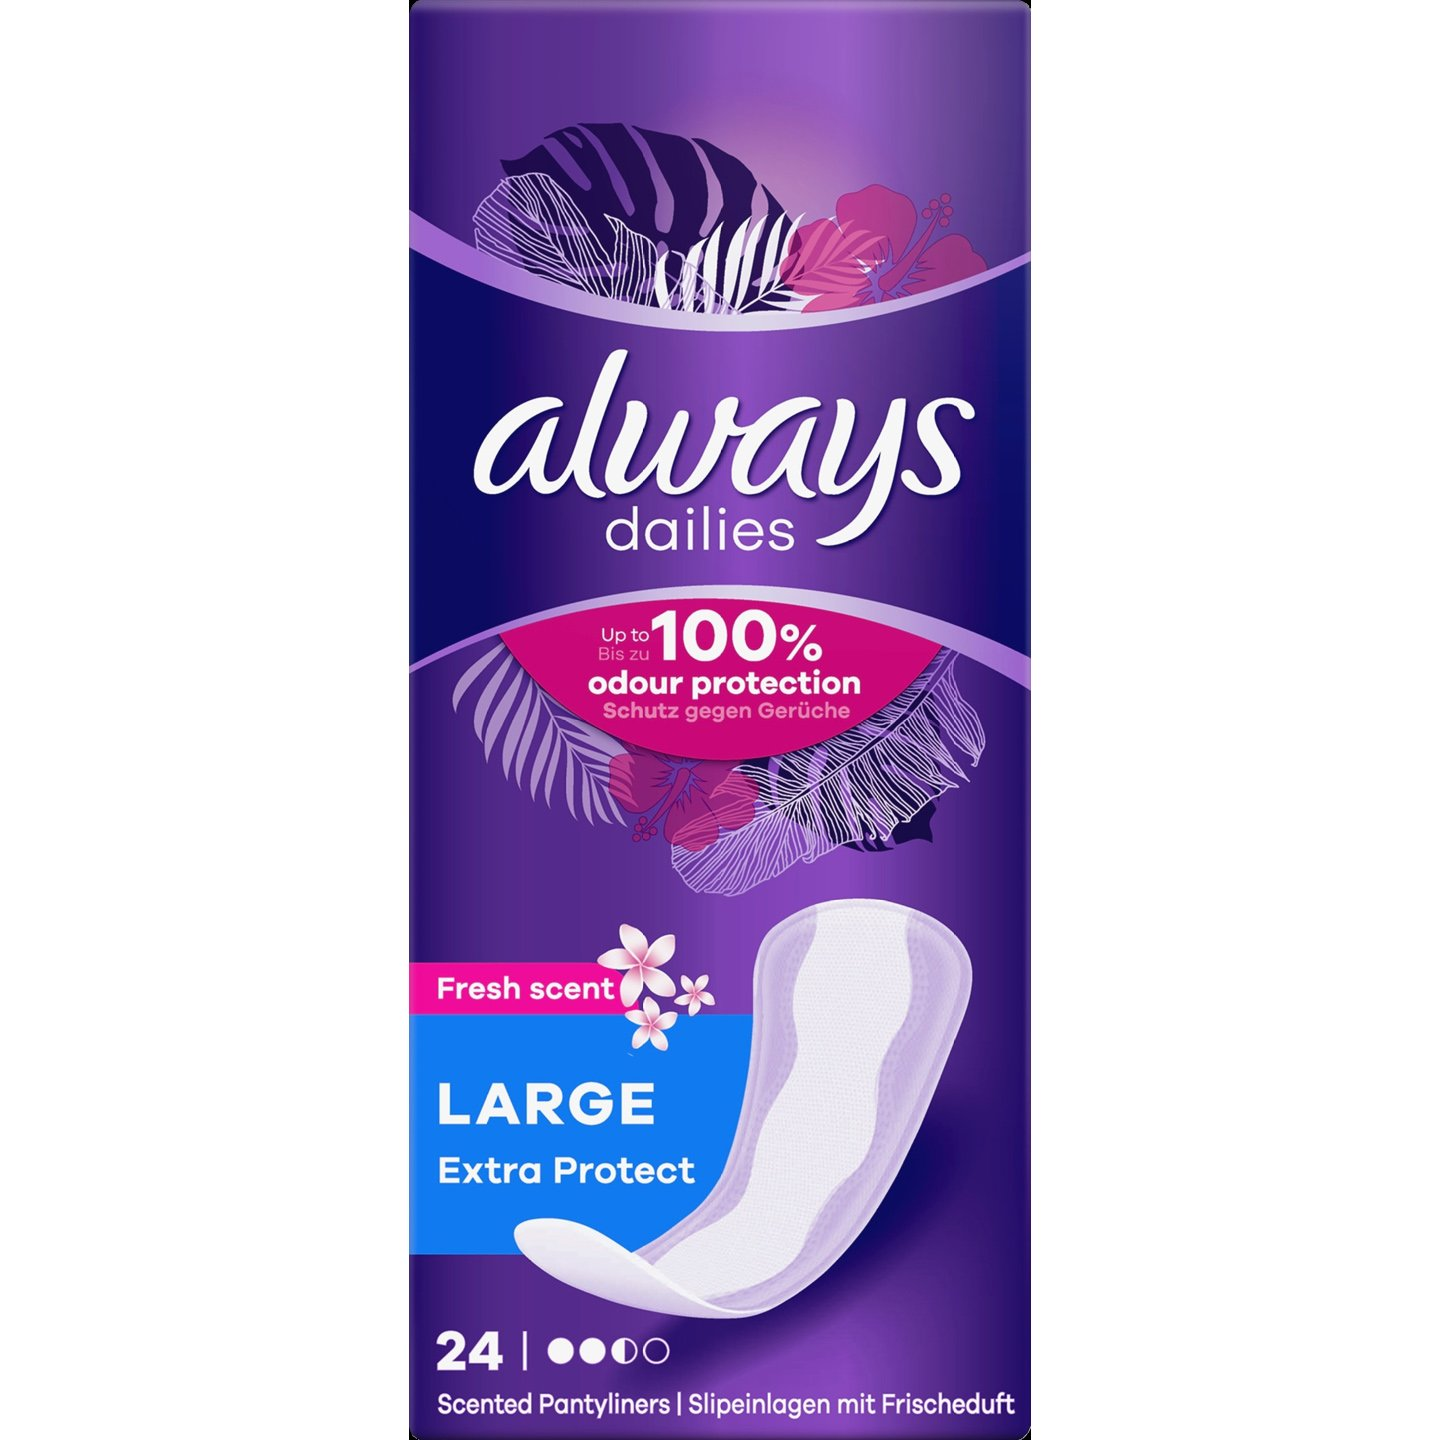 Always Dailies Extra Protect Large Fresh Scent Σερβιετάκια 24 τεμάχια